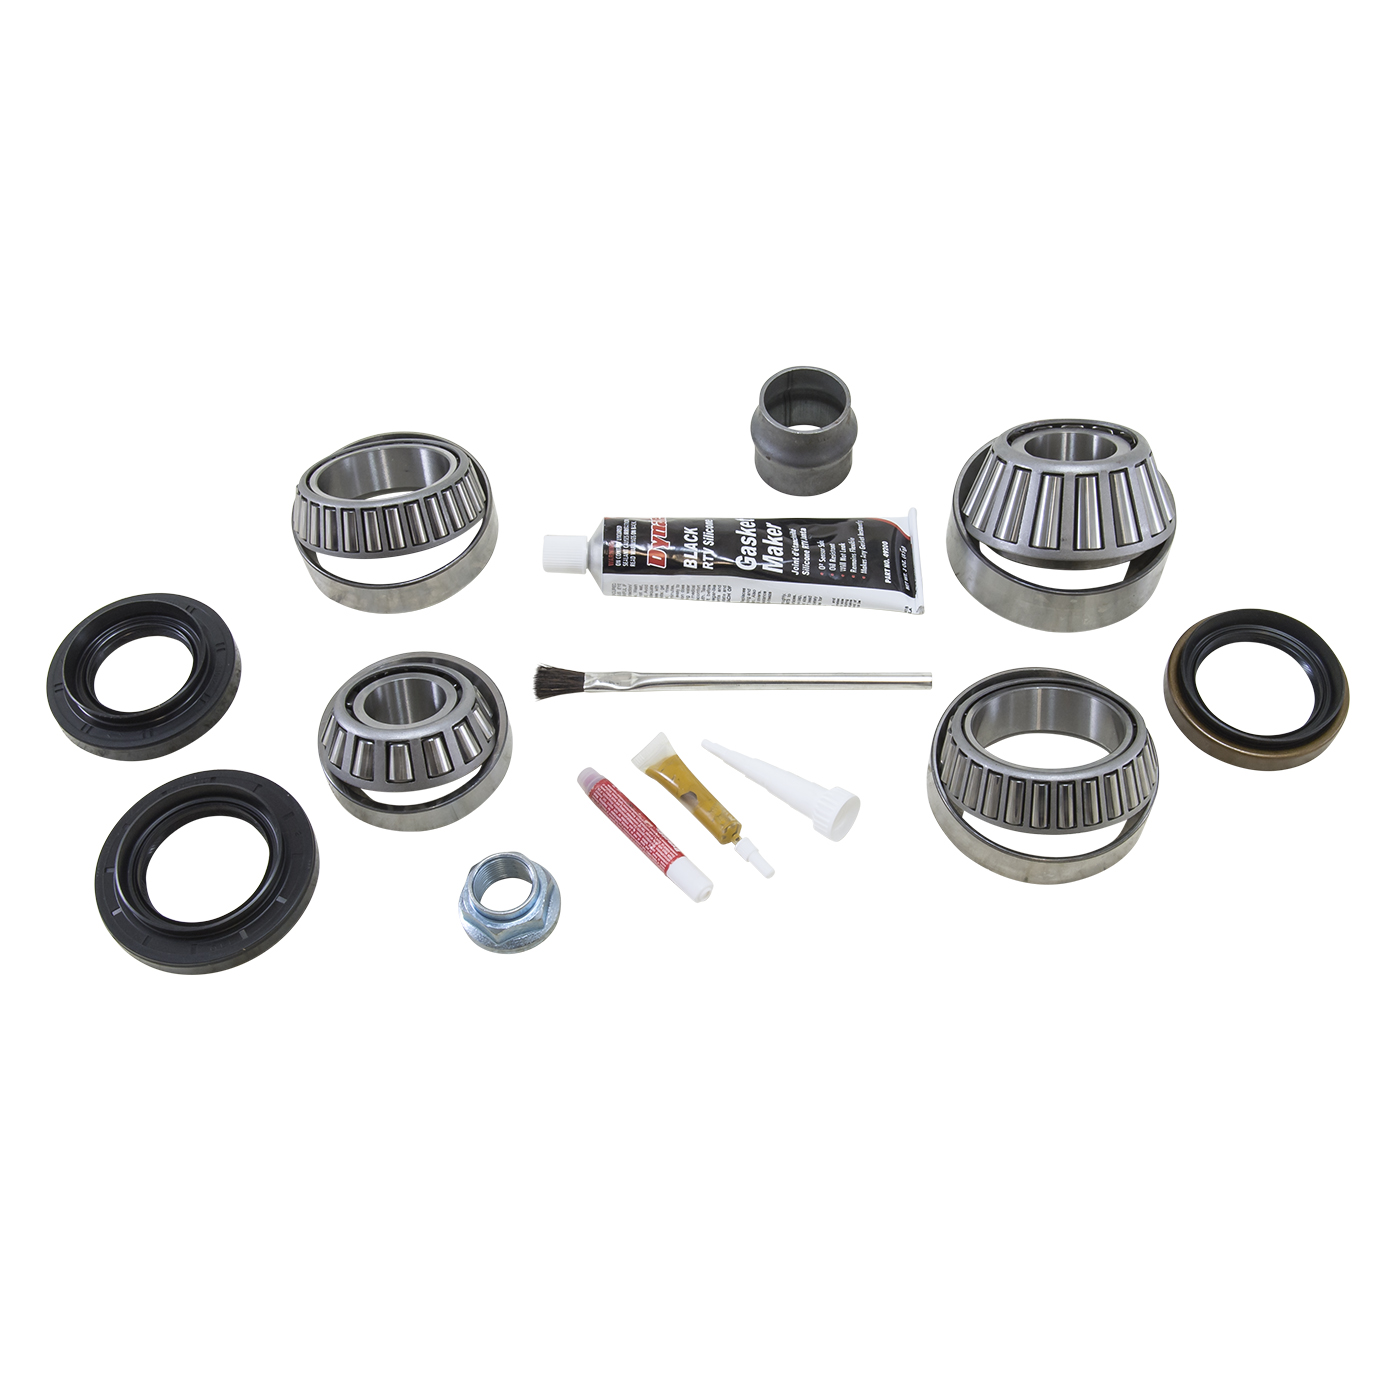 BK TLC-REV-B - Yukon Bearing install kit for new Toyota Clamshell design front reverse rotation differential